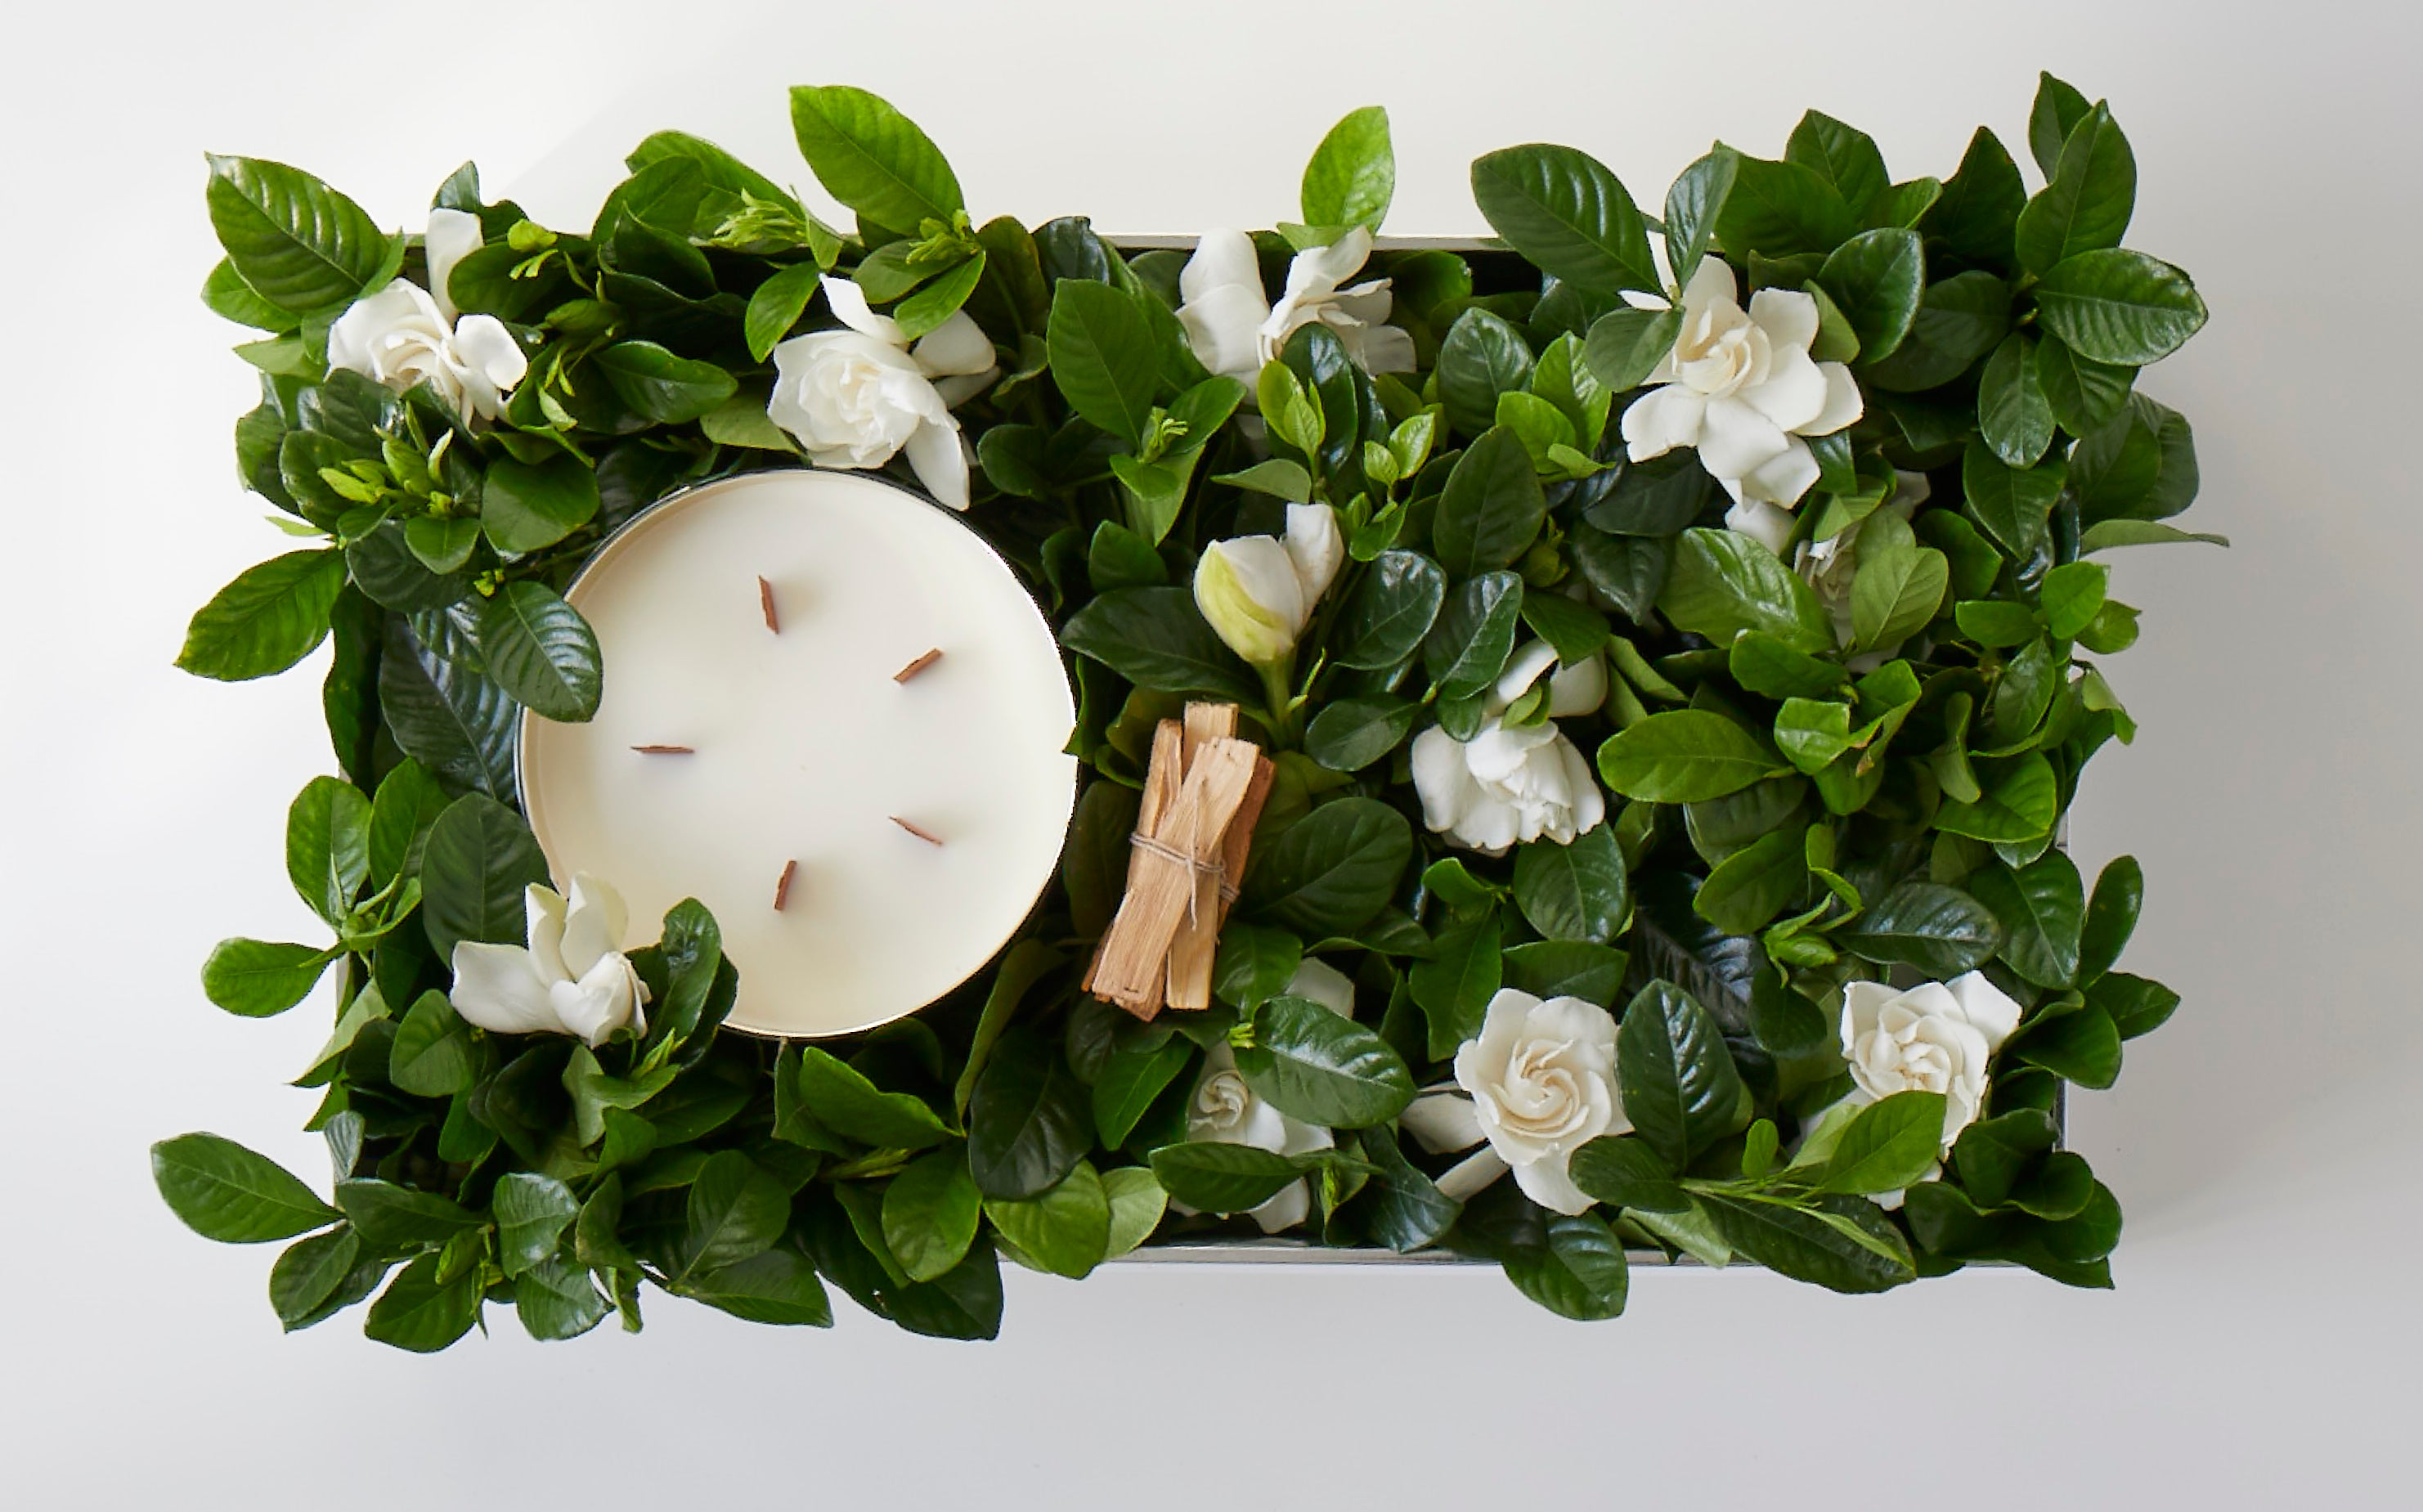 Candle gift box with gardenias and palo santo